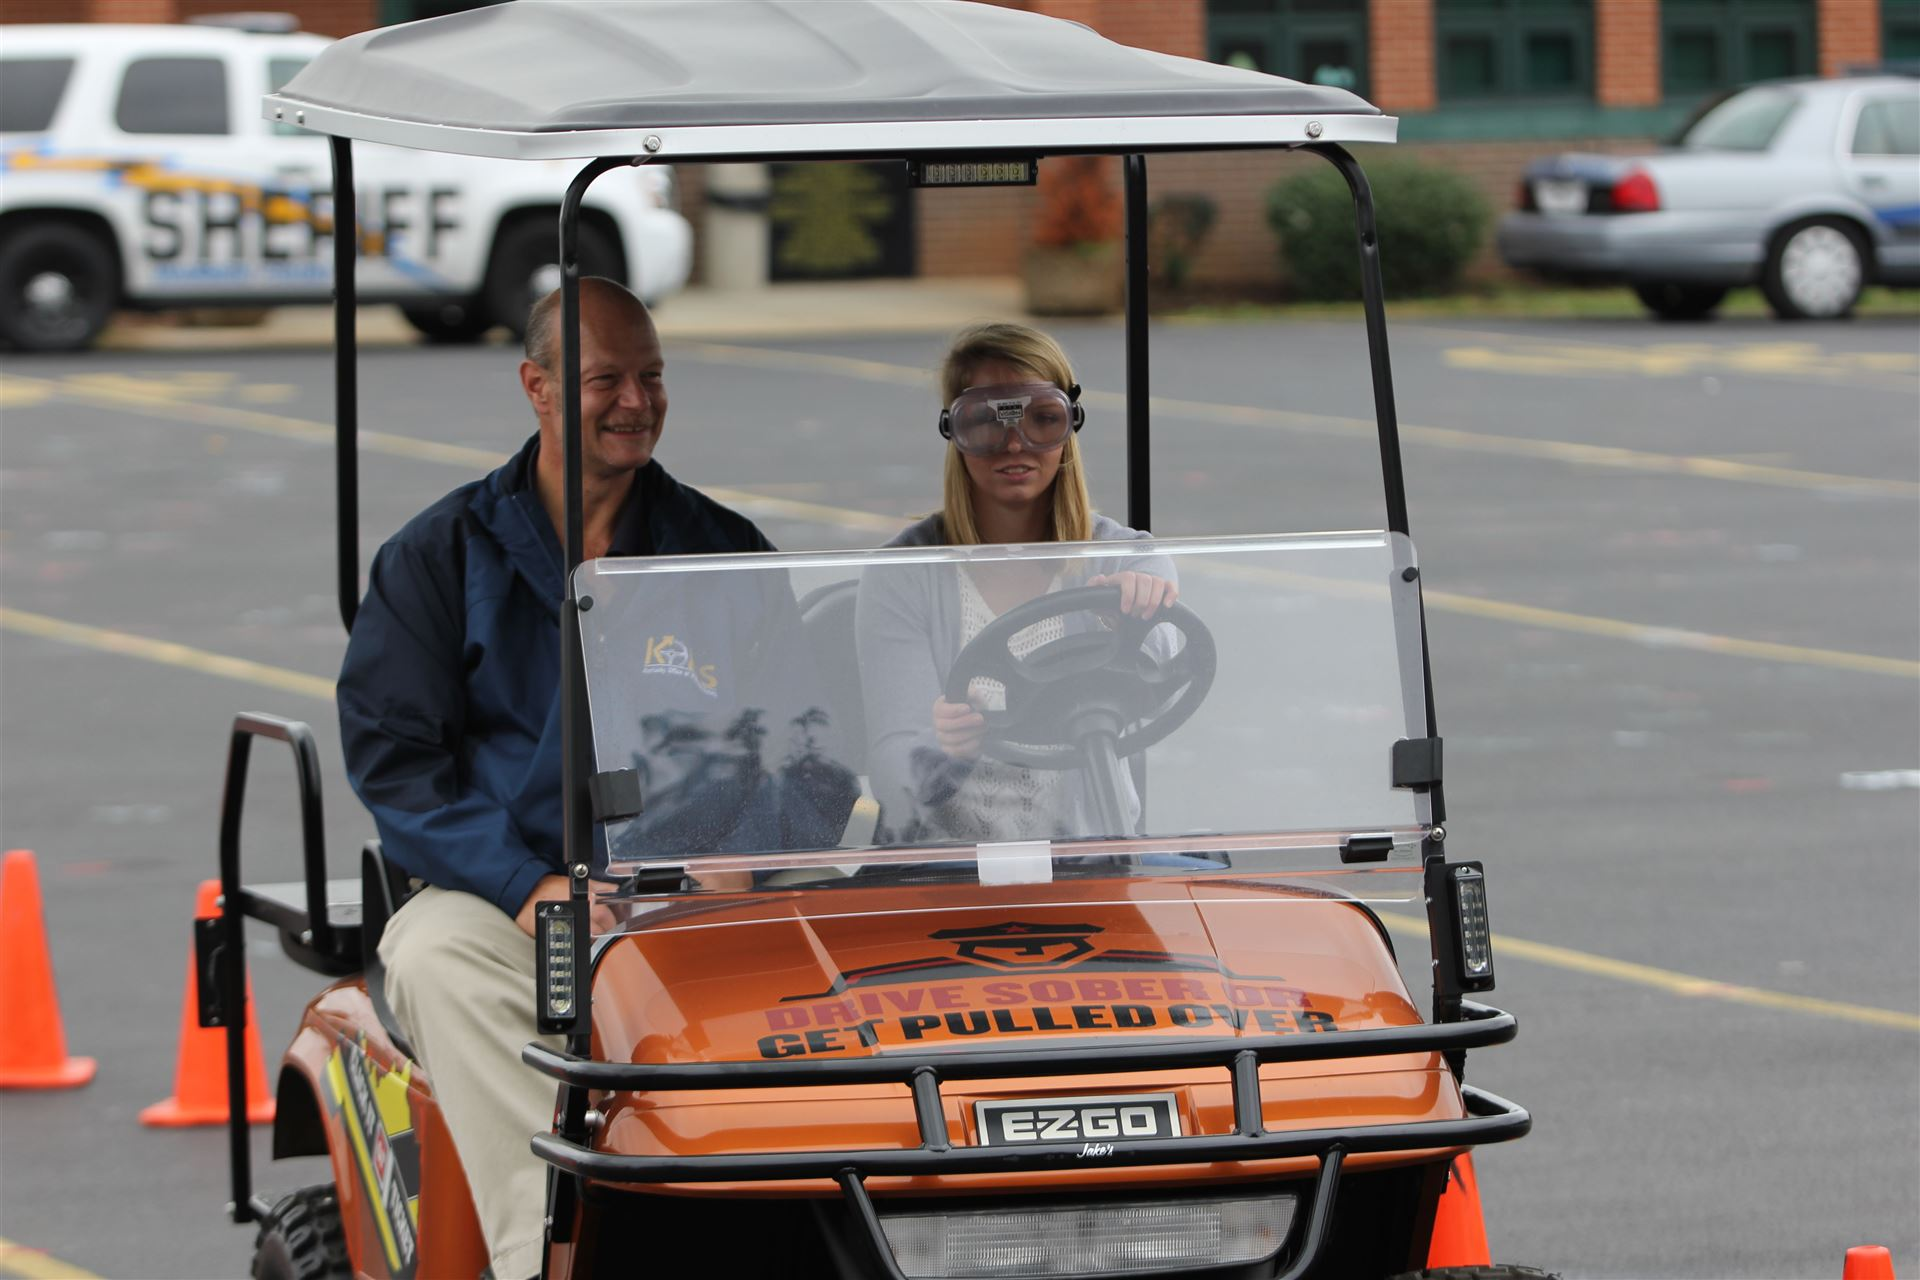 GHS students learned important lessons about impaired driving and distracted driving.